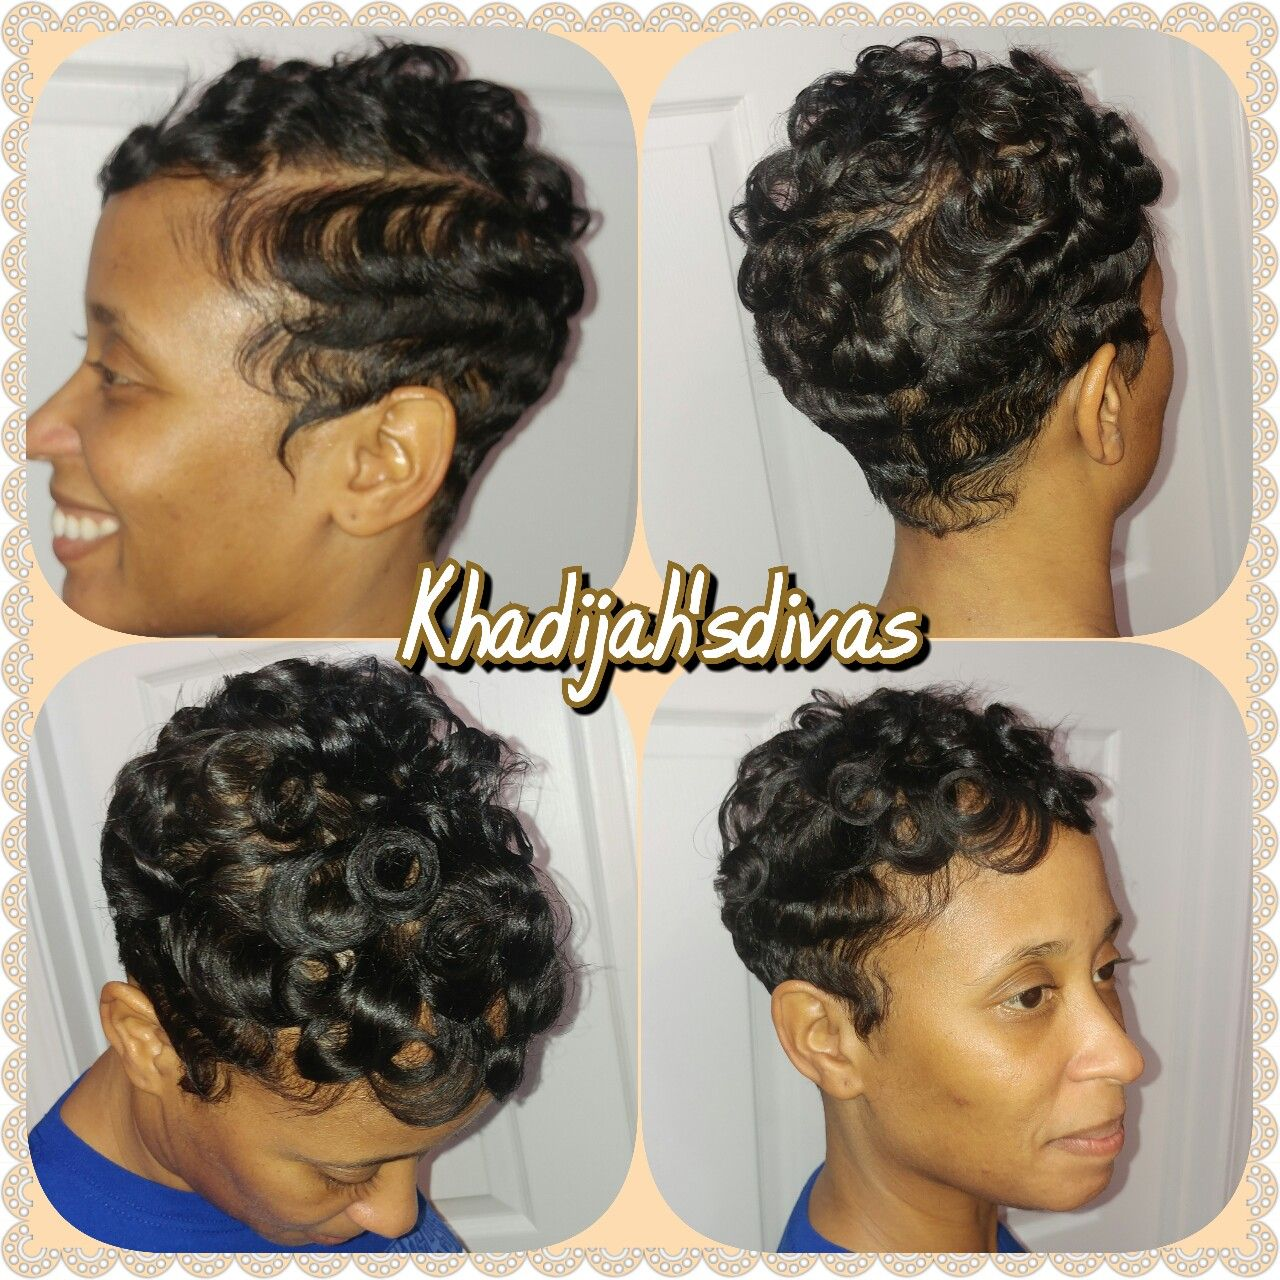 Finger Waves And Pin Curls Are A Great Style For Thin Hair It Last For A While As Well Short Hair Styles Hair Hairstyles For Thin Hair